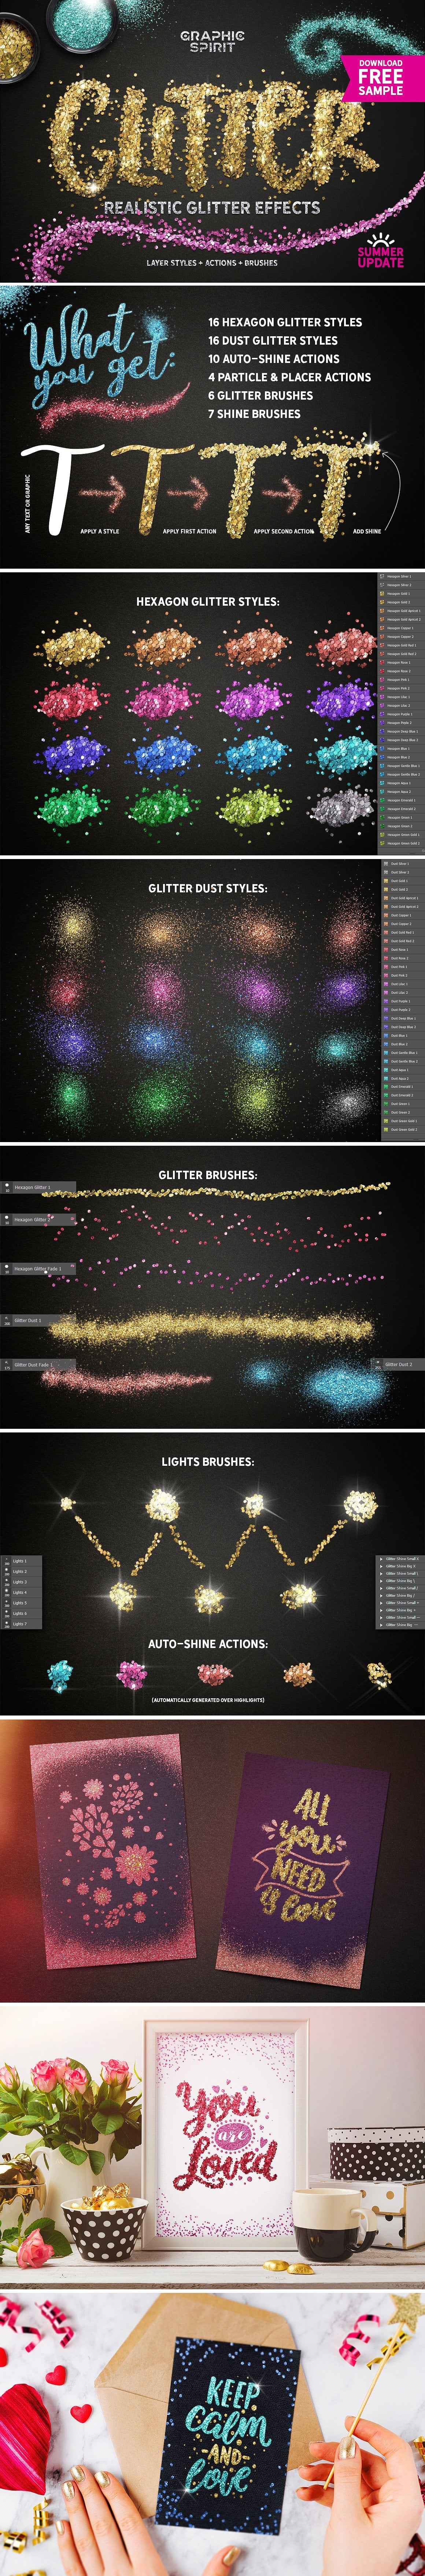 Glitter Effect Photoshop TOOLKIT - glitter effects photoshop view0